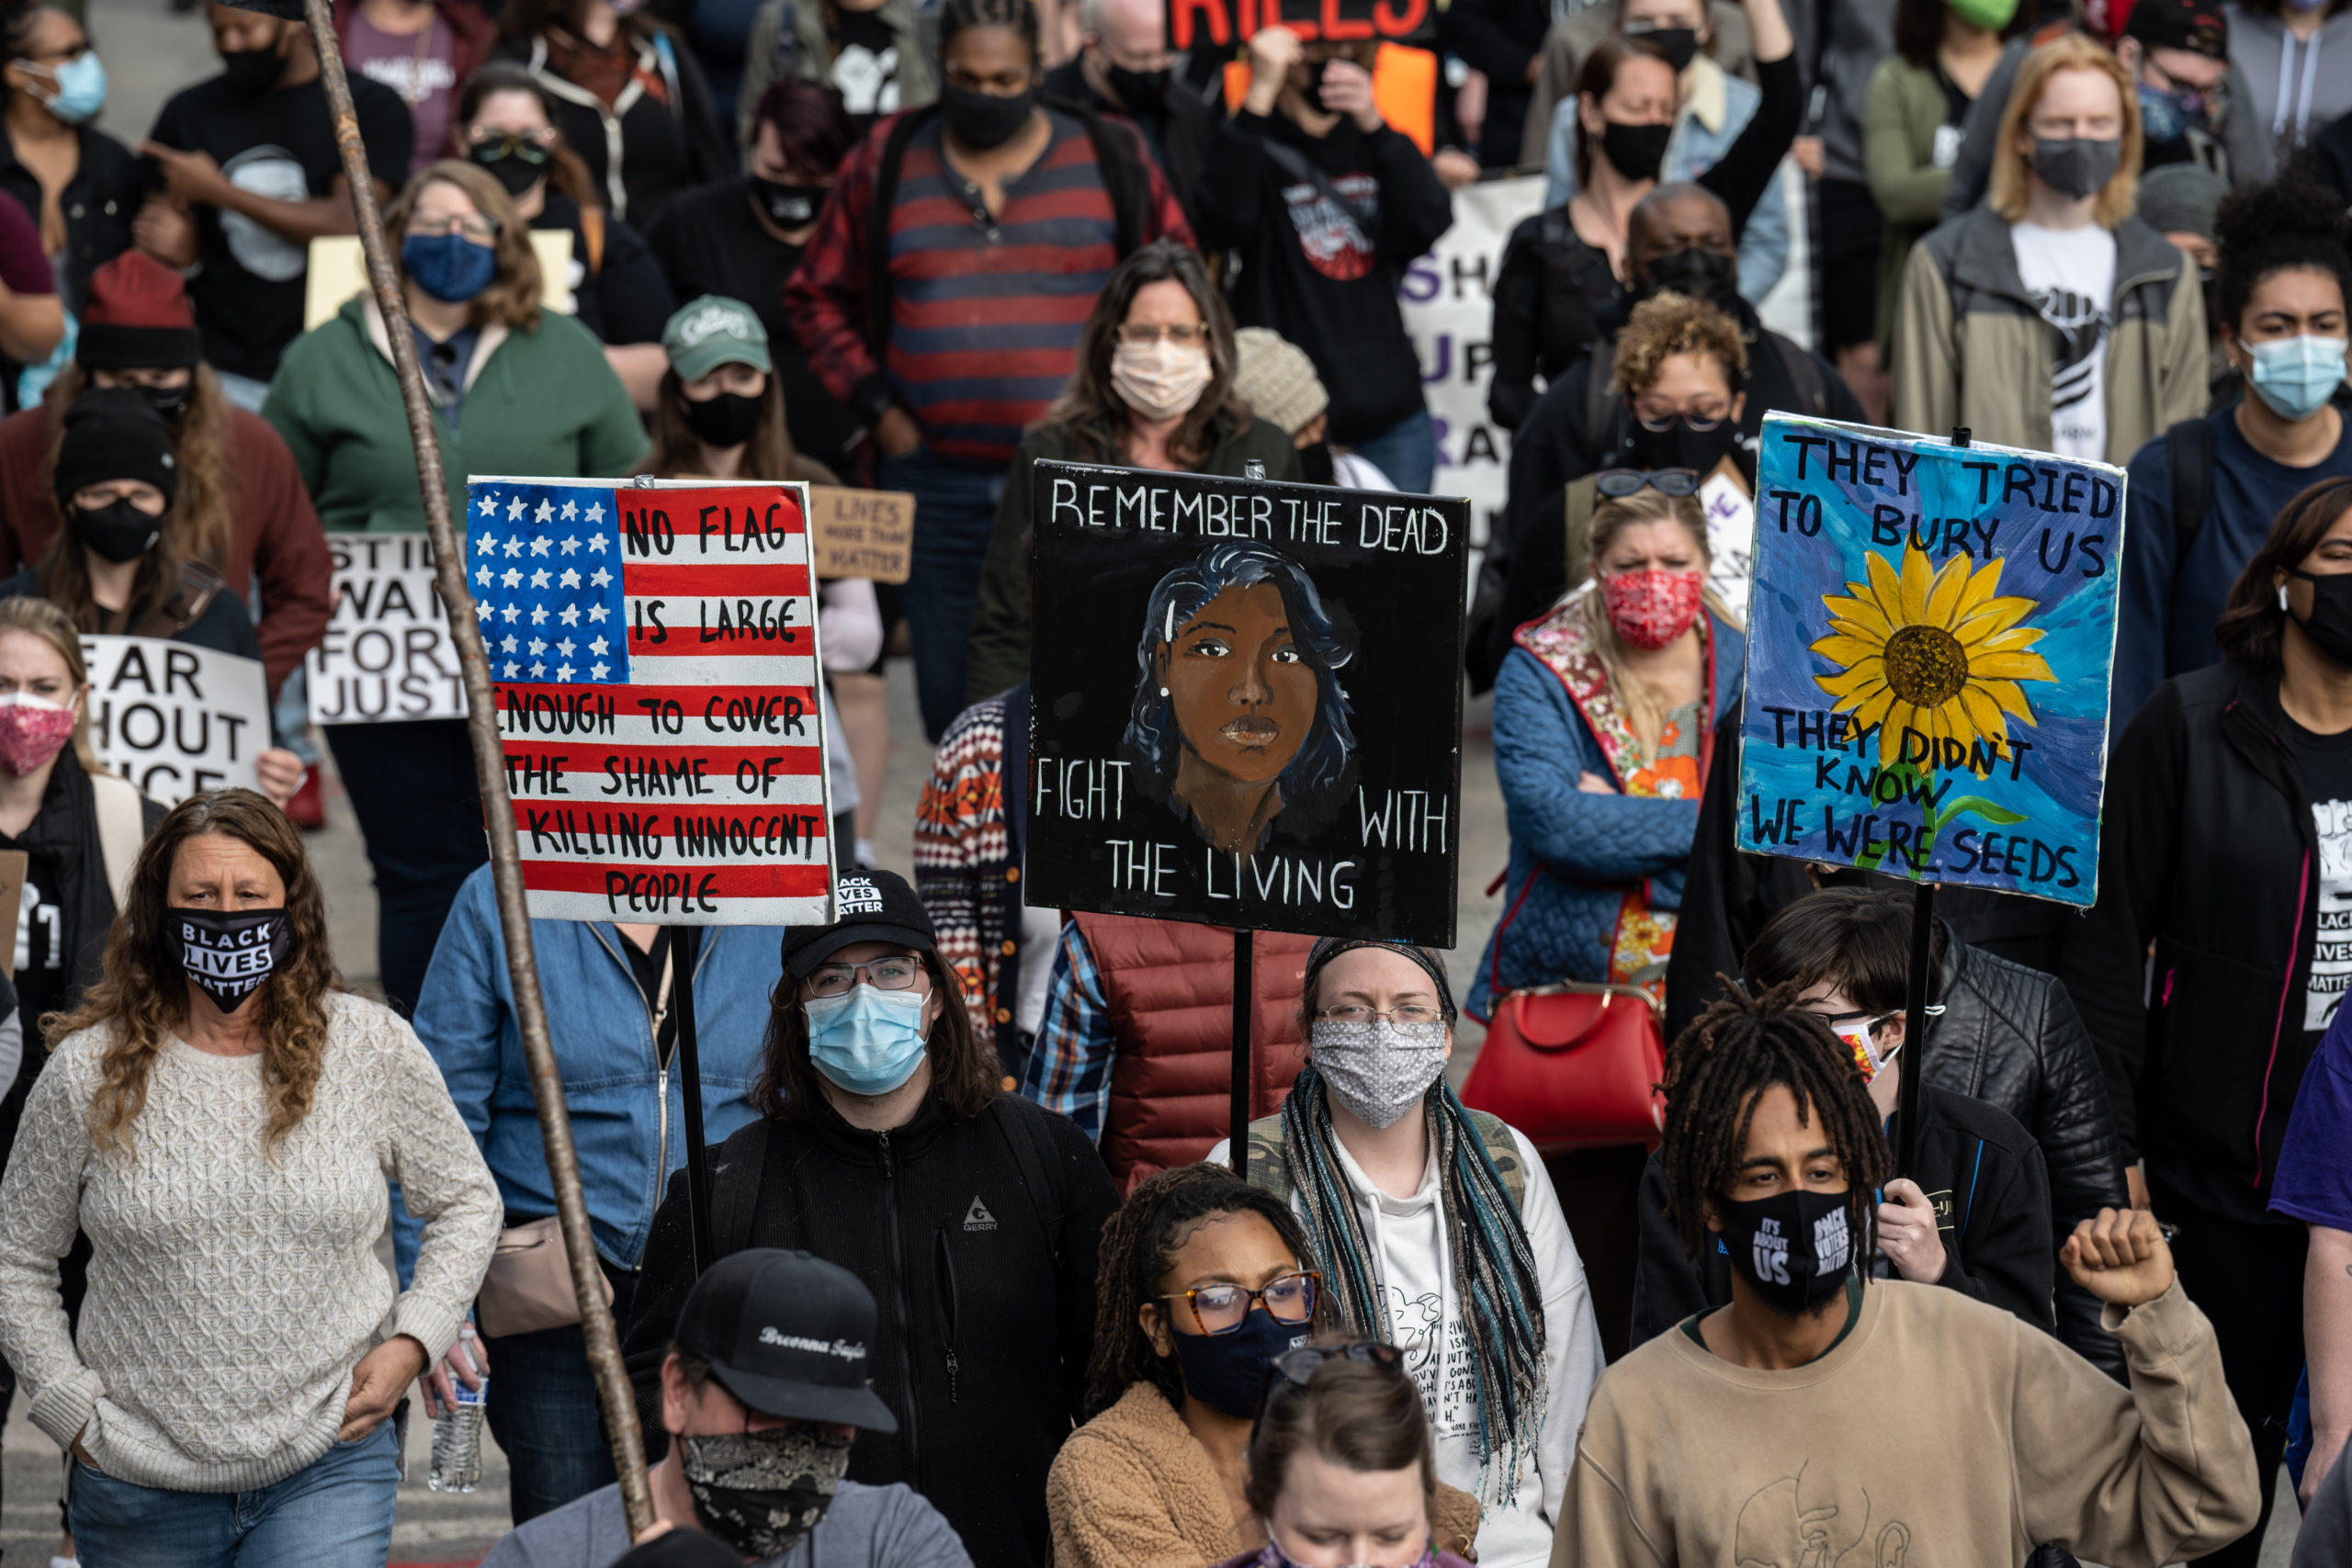 A crowd of protesters and activists on March 13 in Louisville, Kentucky. (Jon Cherry/Getty Images)